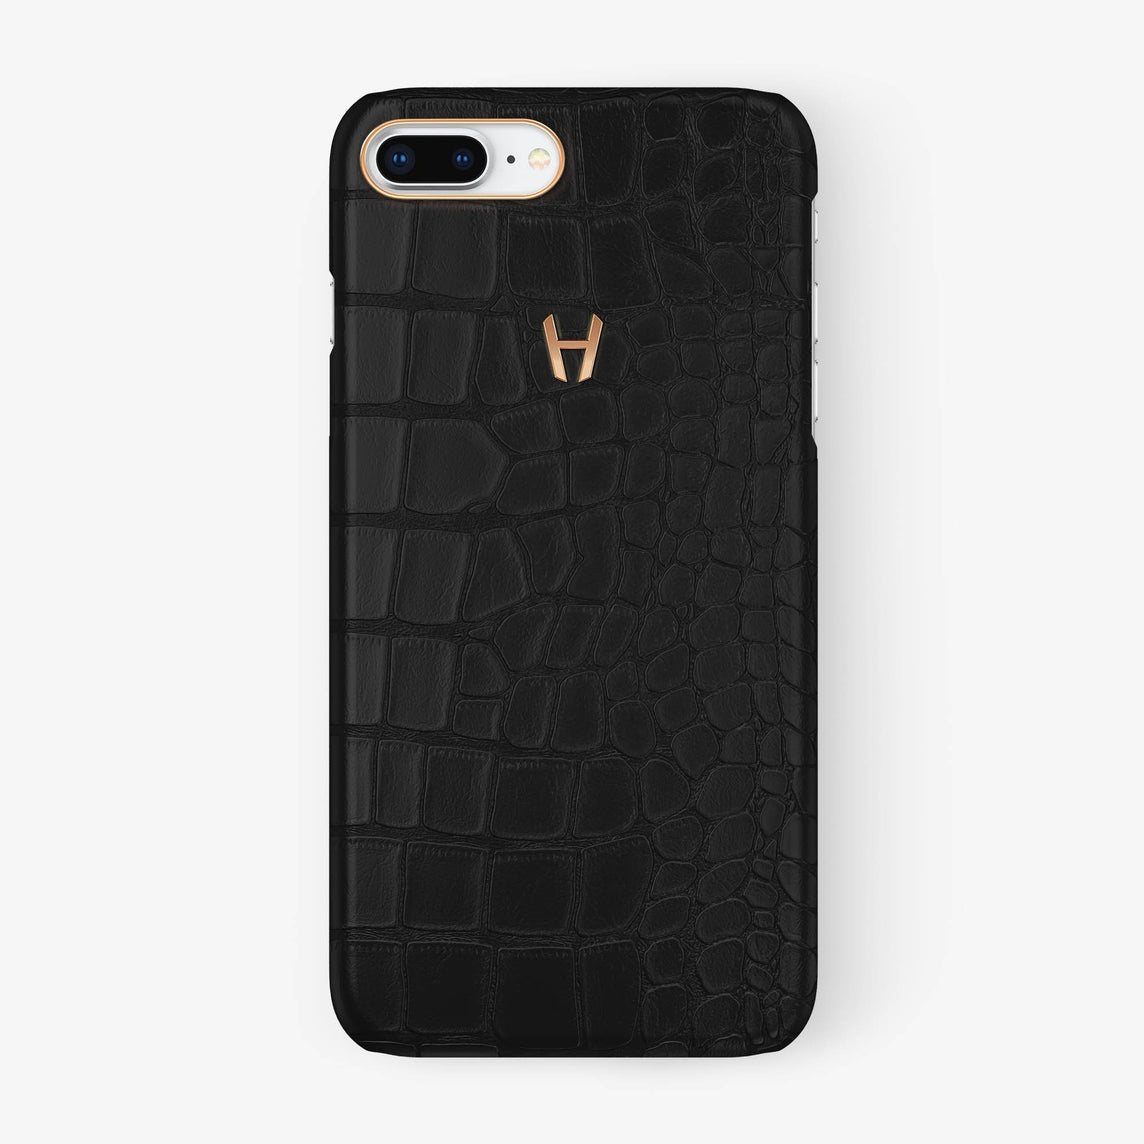 Alligator Case iPhone 7/8 Plus | Phantom Black - Rose Gold - Hadoro